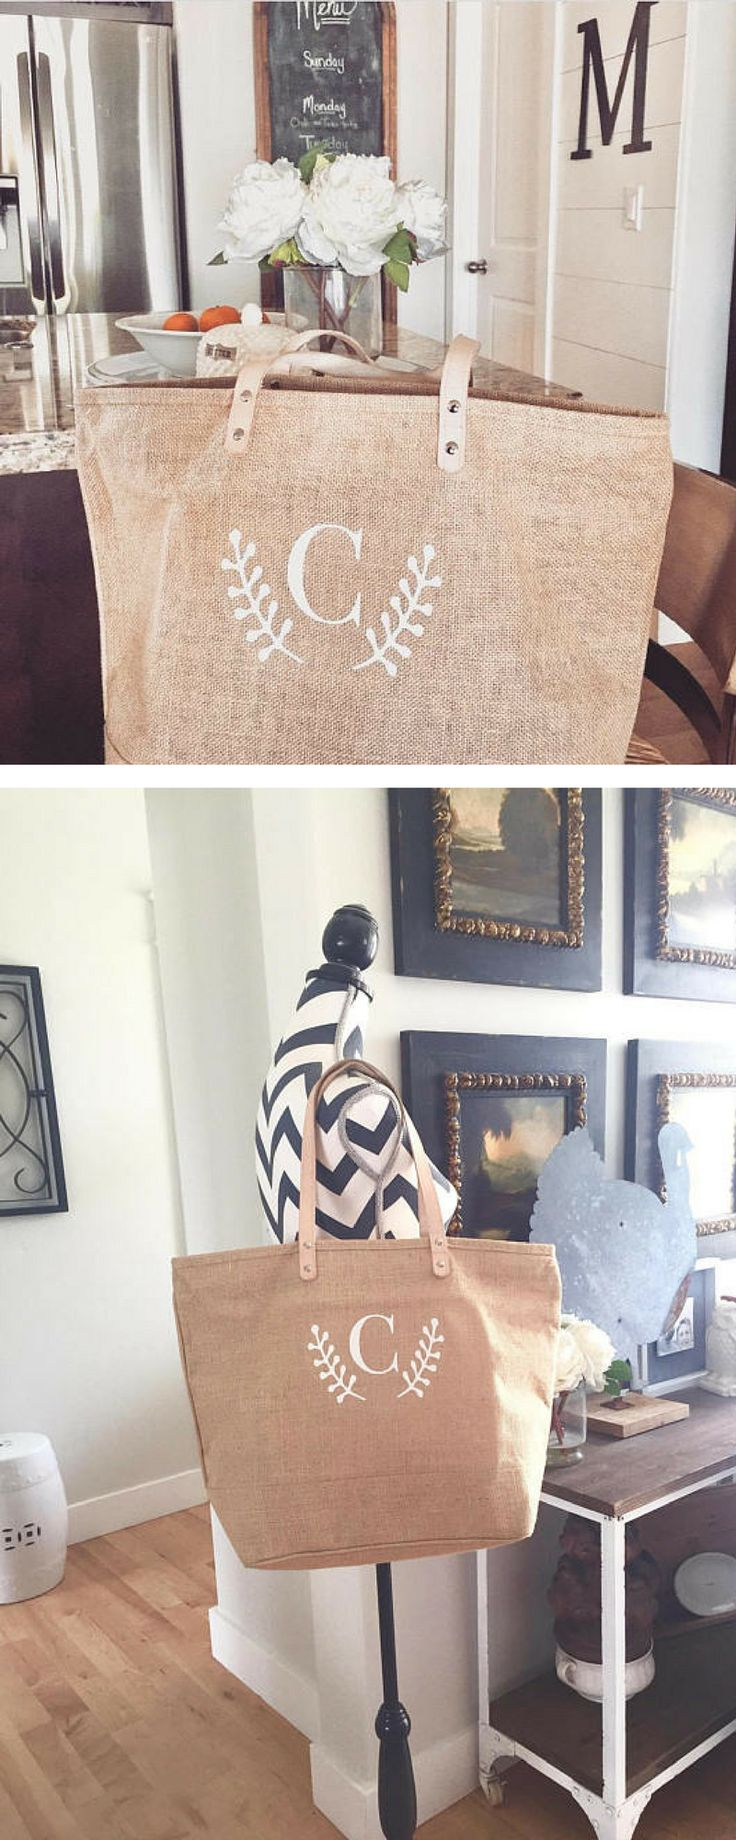 I love this personalized, monogrammed jute tote bag. It's the perfect beach bag. #commissionlink #totebag #jute #beach #natural #personalized #monogrammed